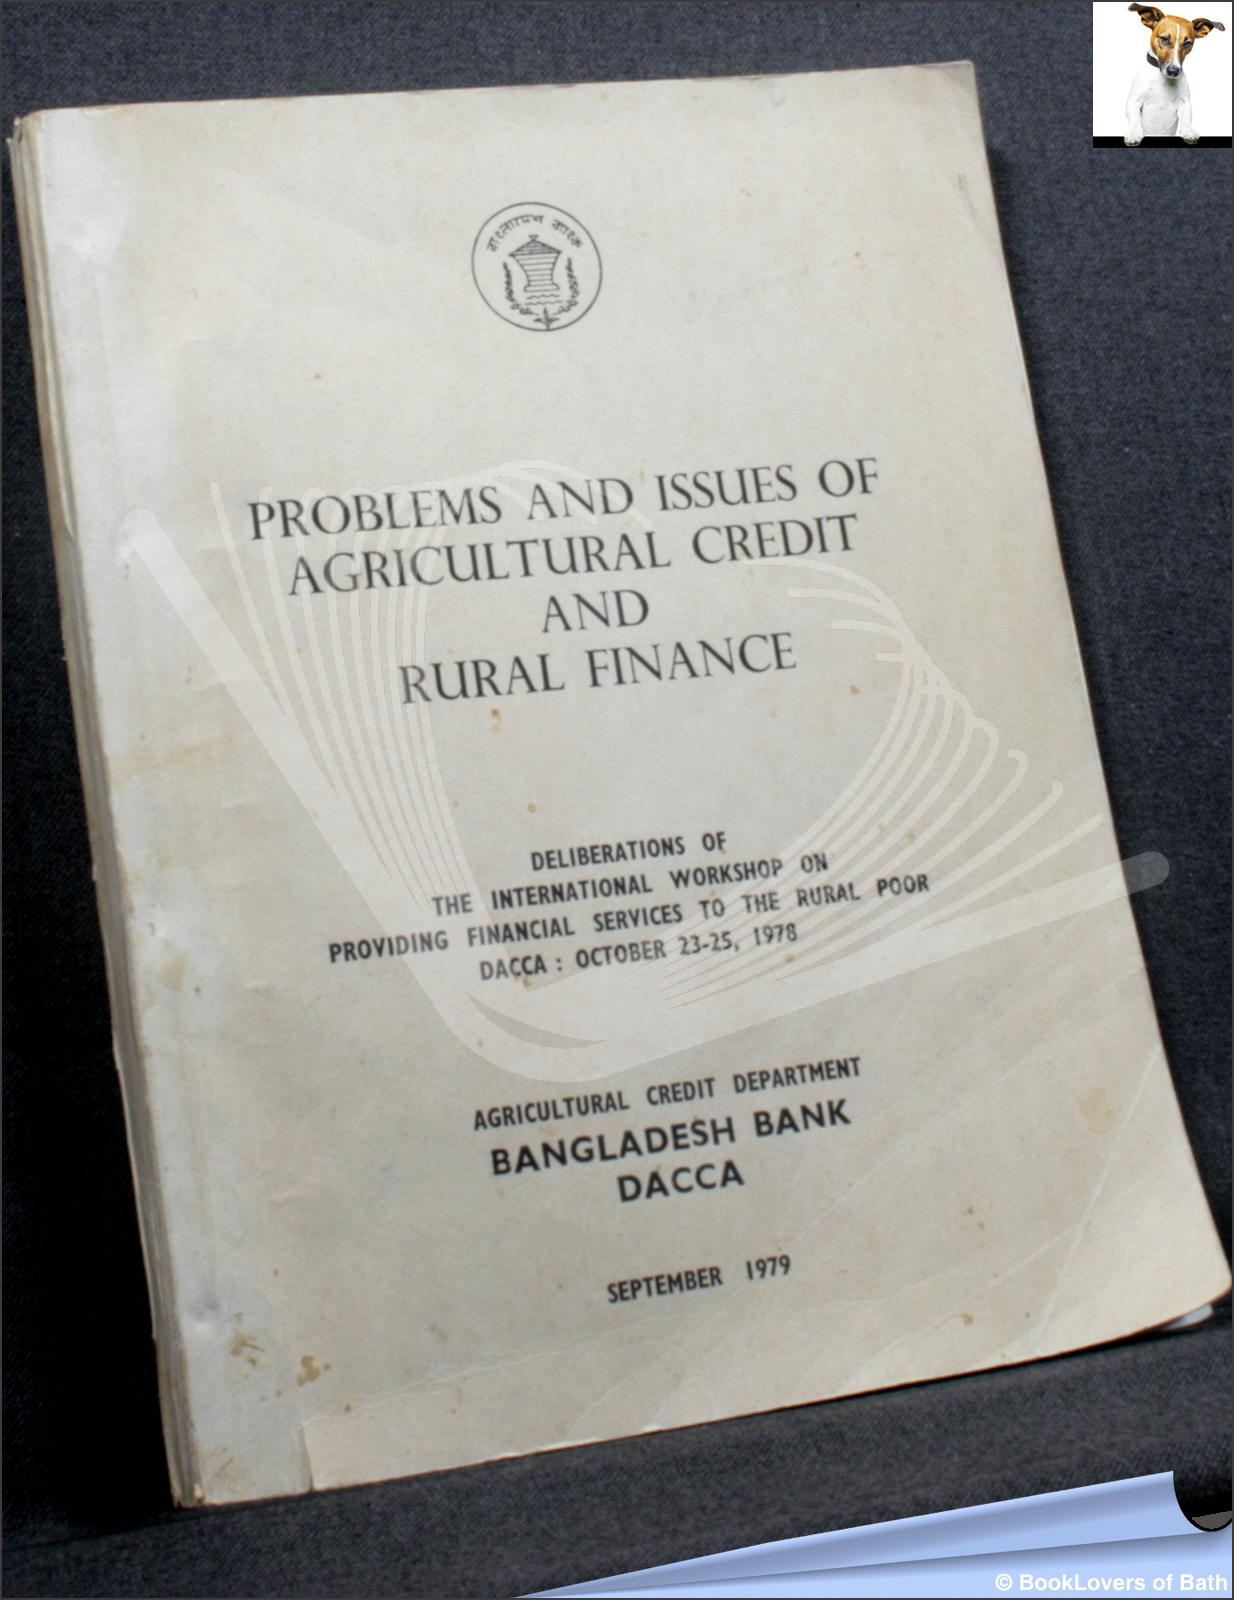 Problems and Issues of Agricultural Credit and Rural Finance: Deliberations of the International Workshop on Providing Financial Services to the Rural Poor, Dacca, October 23-25, 1978 - Anon